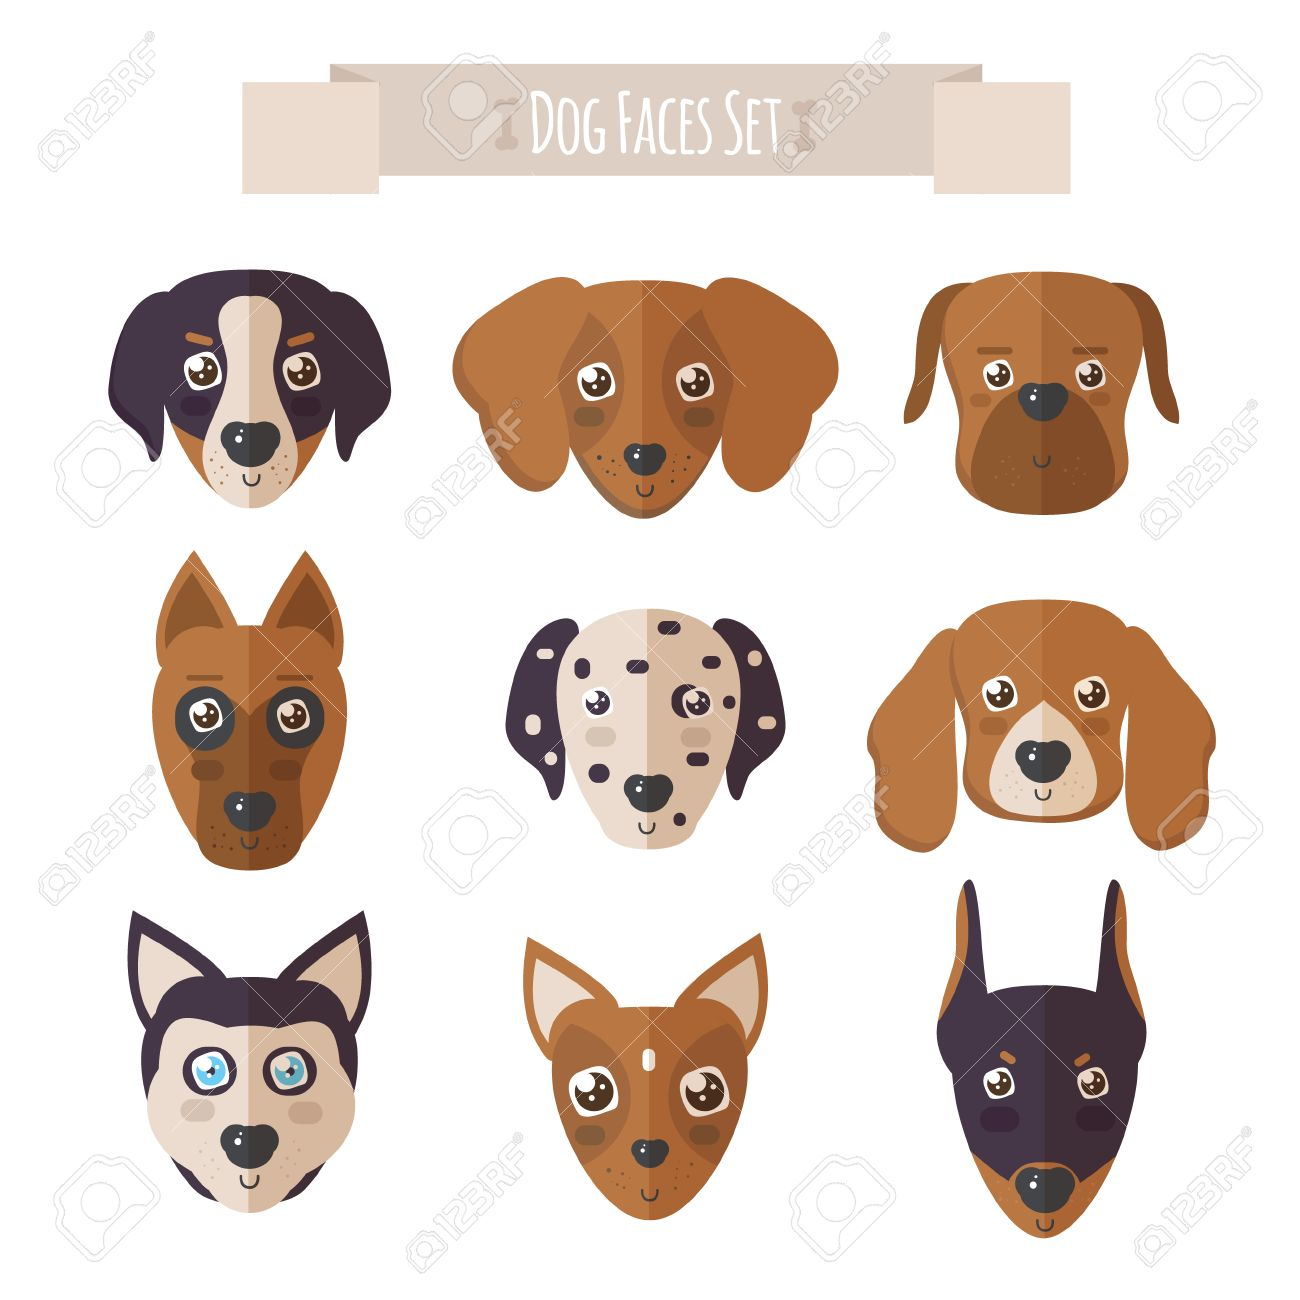 dog faces set in flat style set of dogs vectors and icons vector rh 123rf com dog vector silhouette dog vector art free